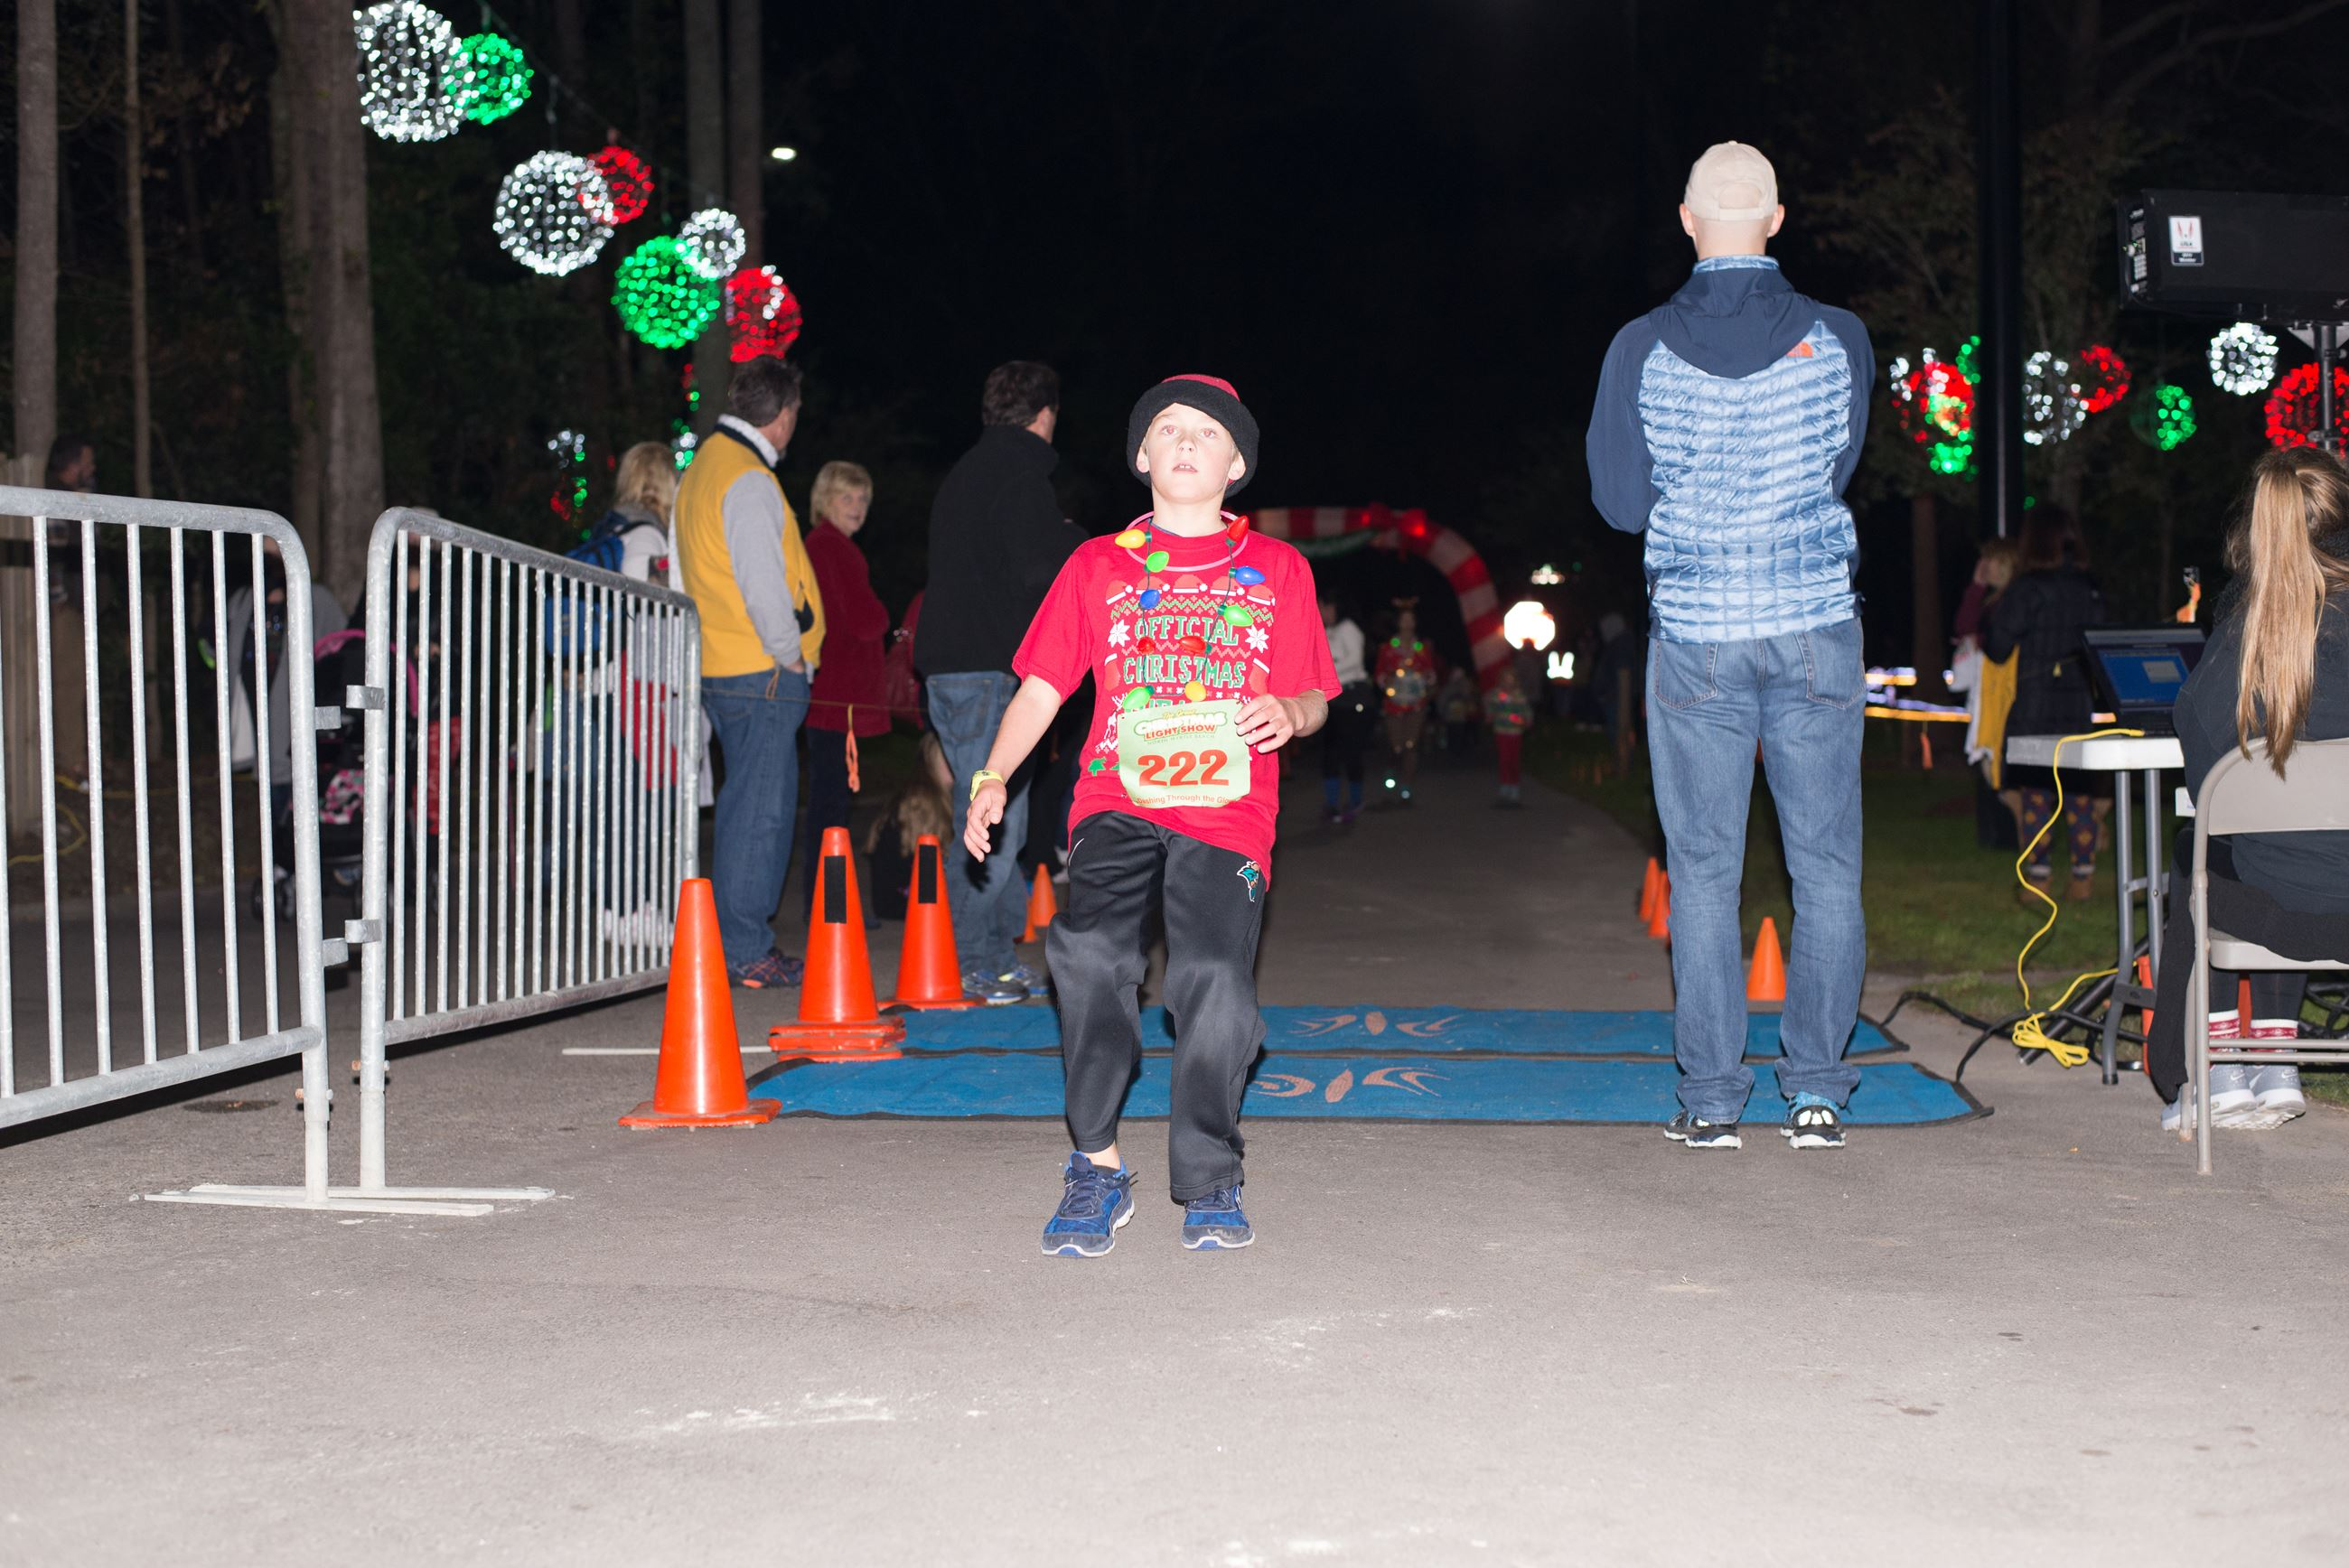 Young Boy Standing Across the Finish Line